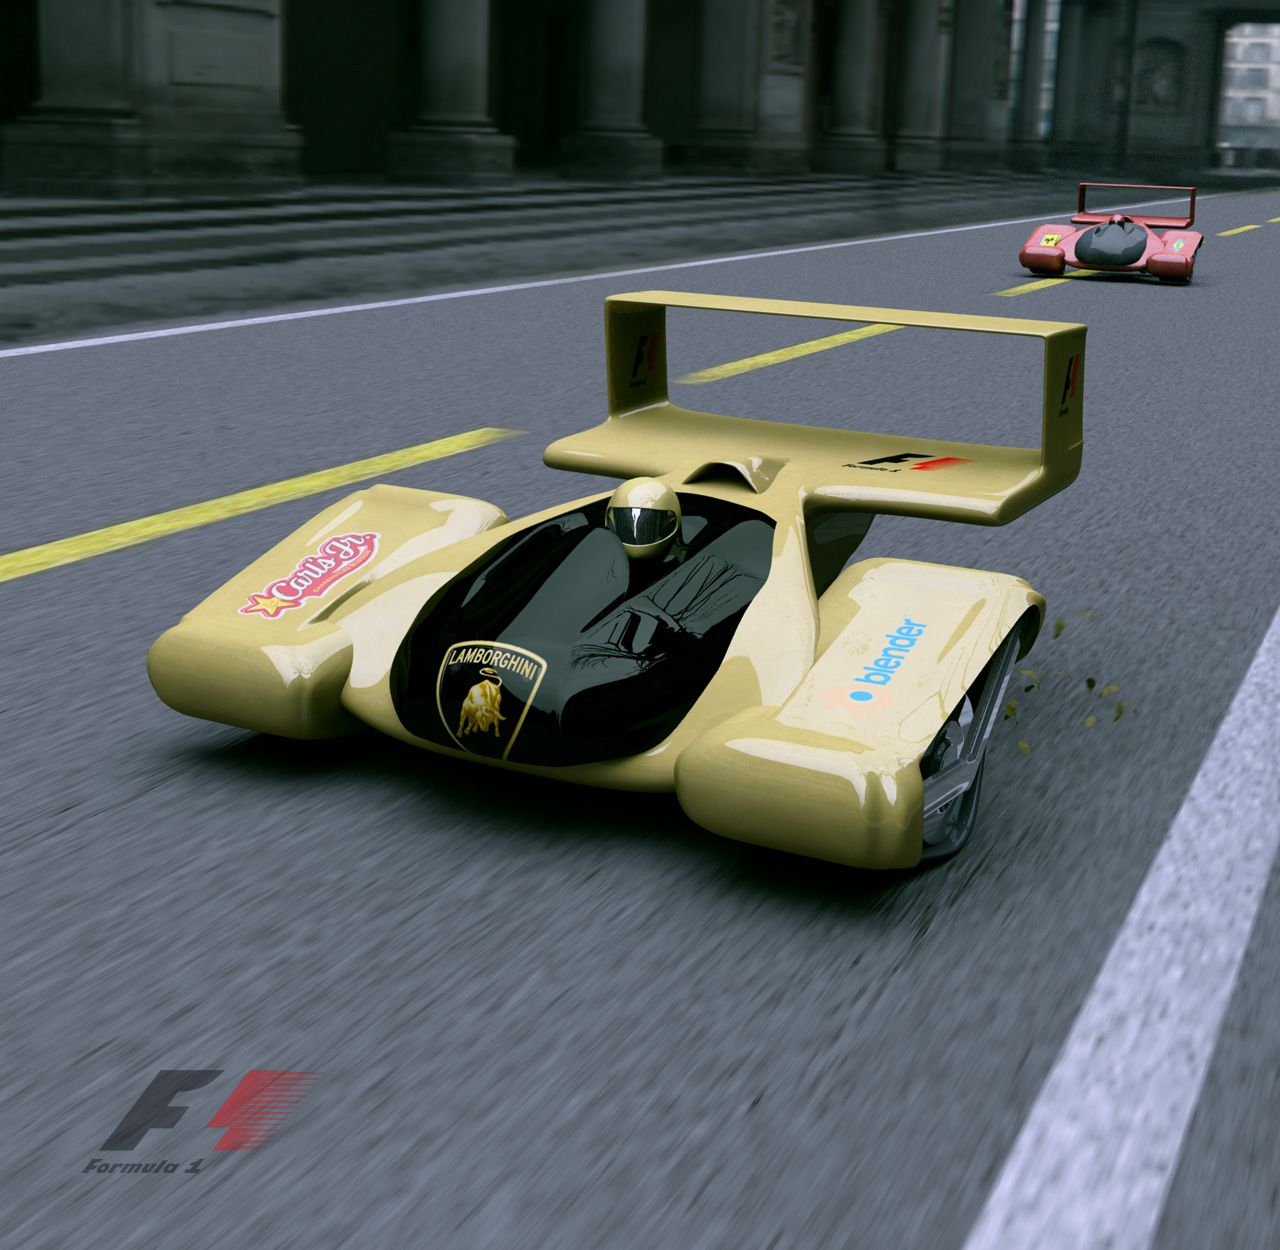 Image By BrooksElliott Formula 1 Racing Cars In The Future